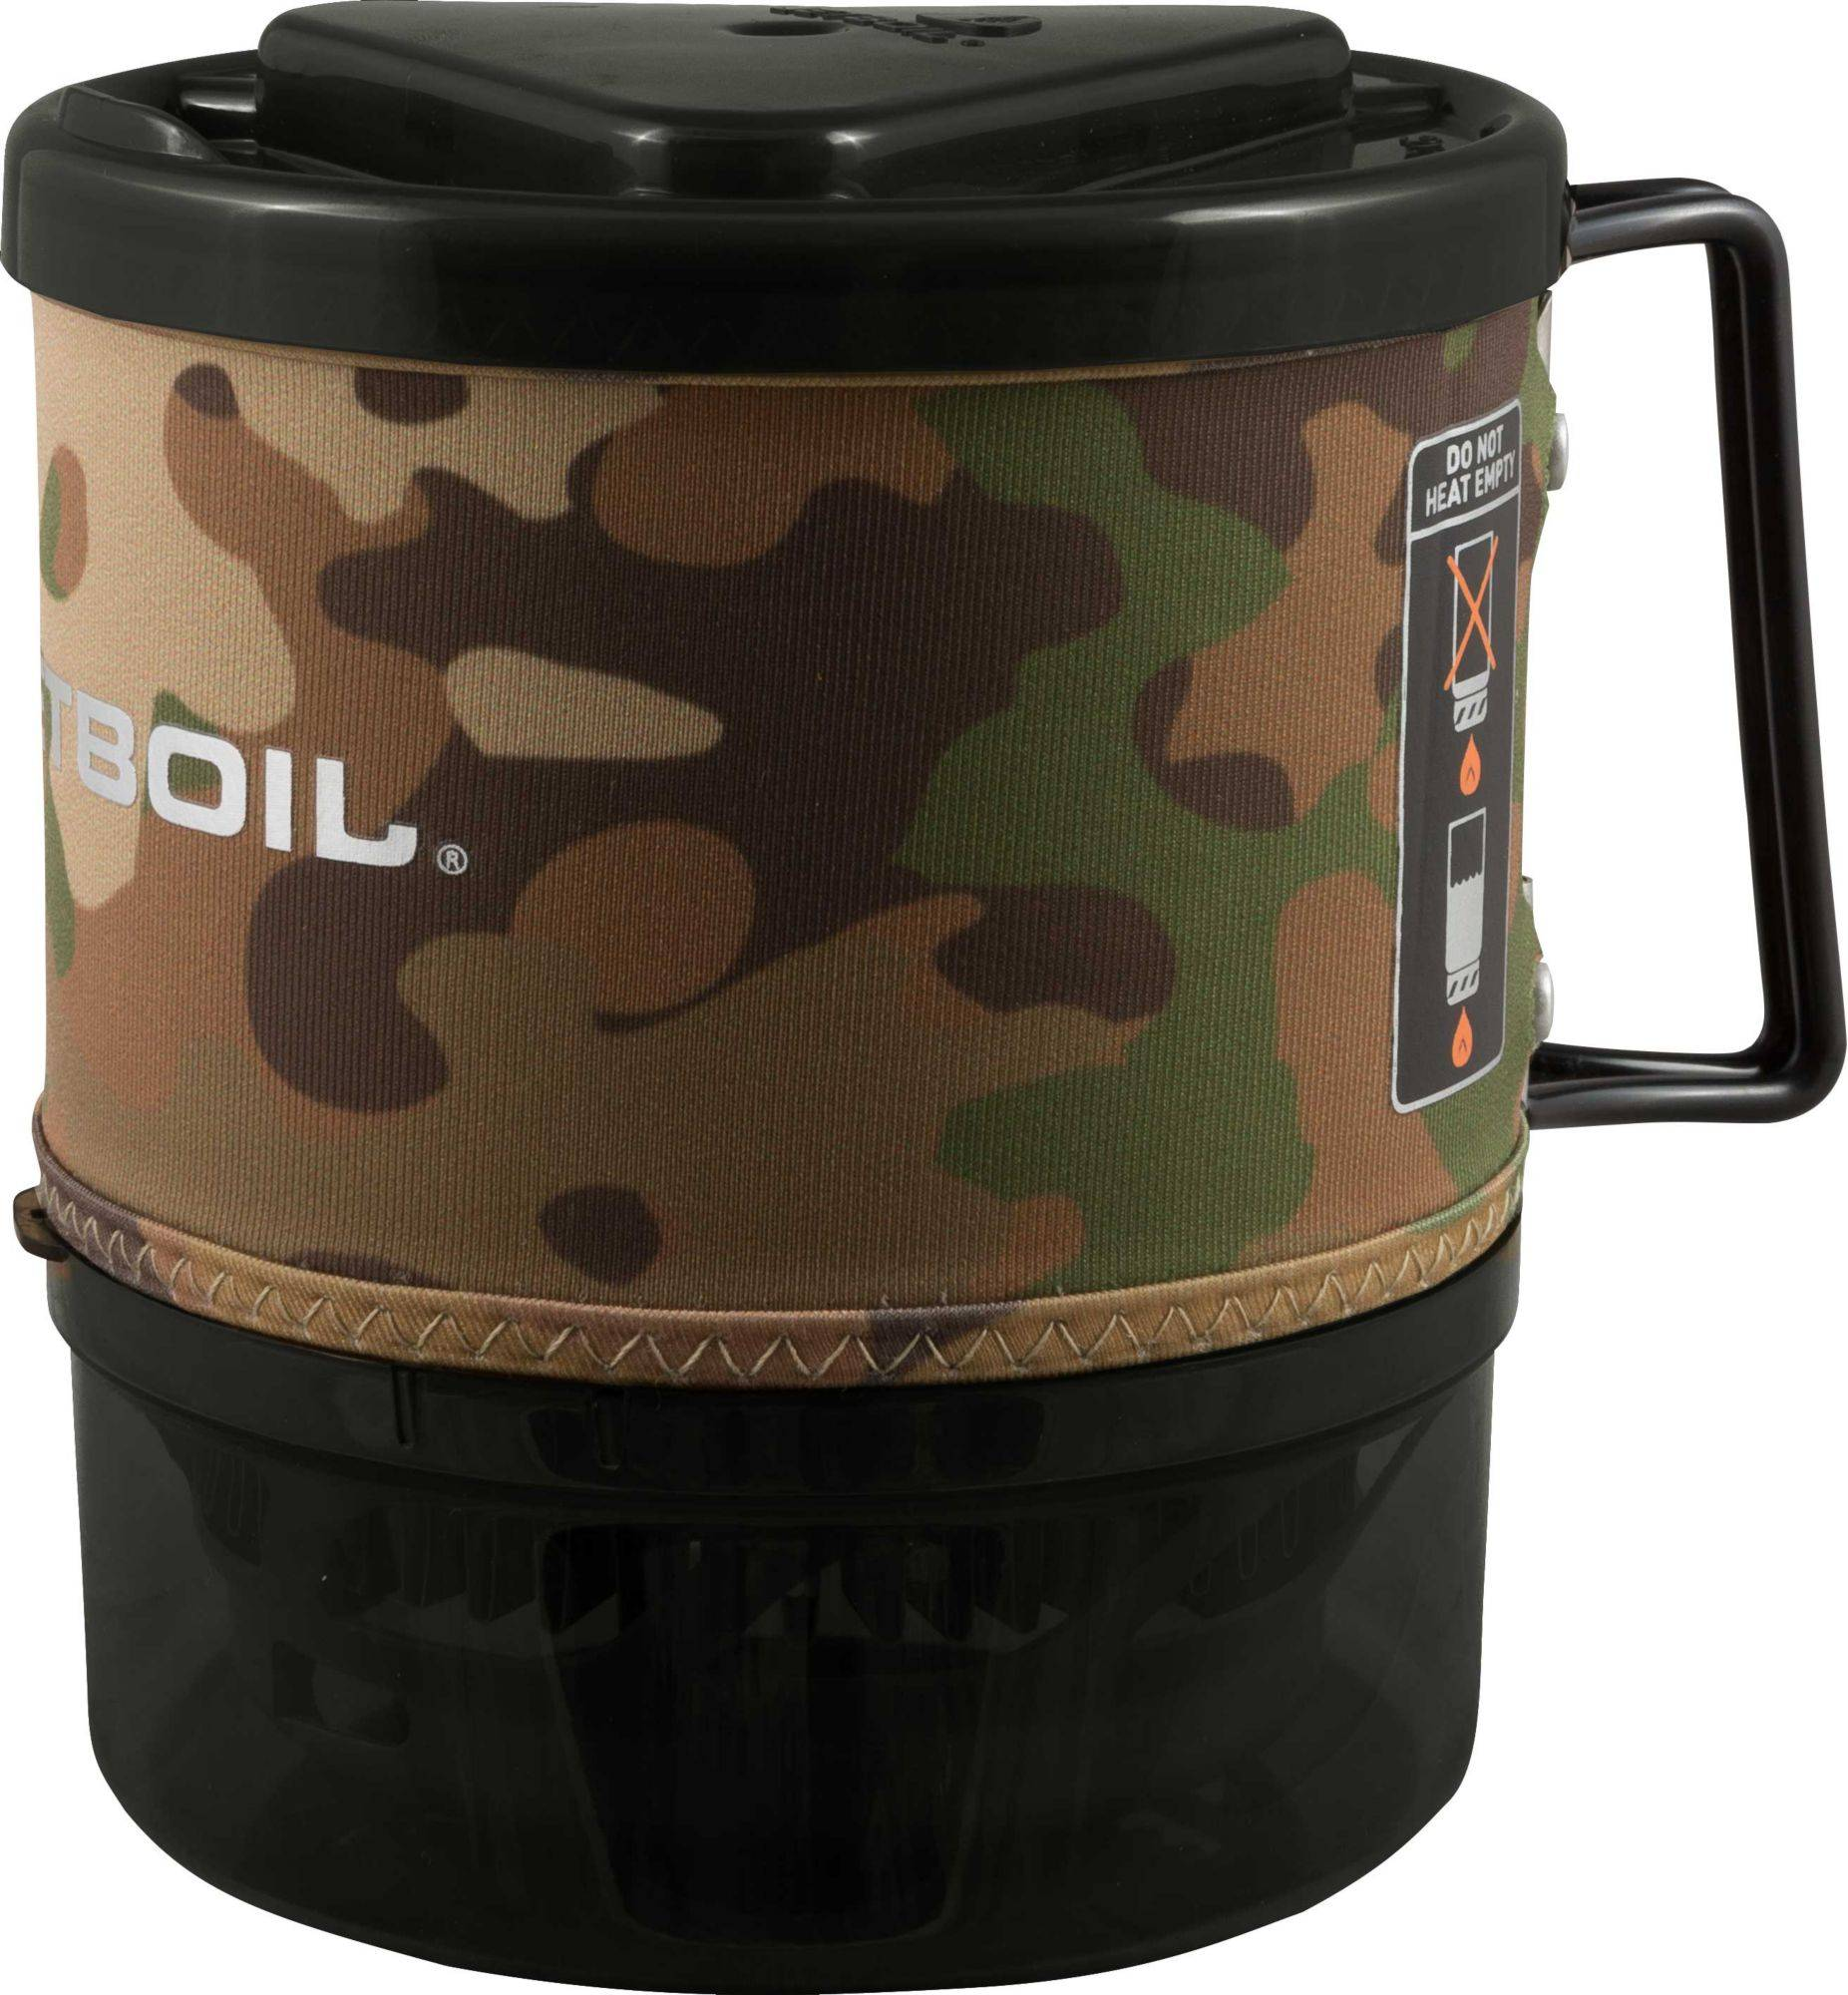 Jetboil MiniMo Cooking System, Camo